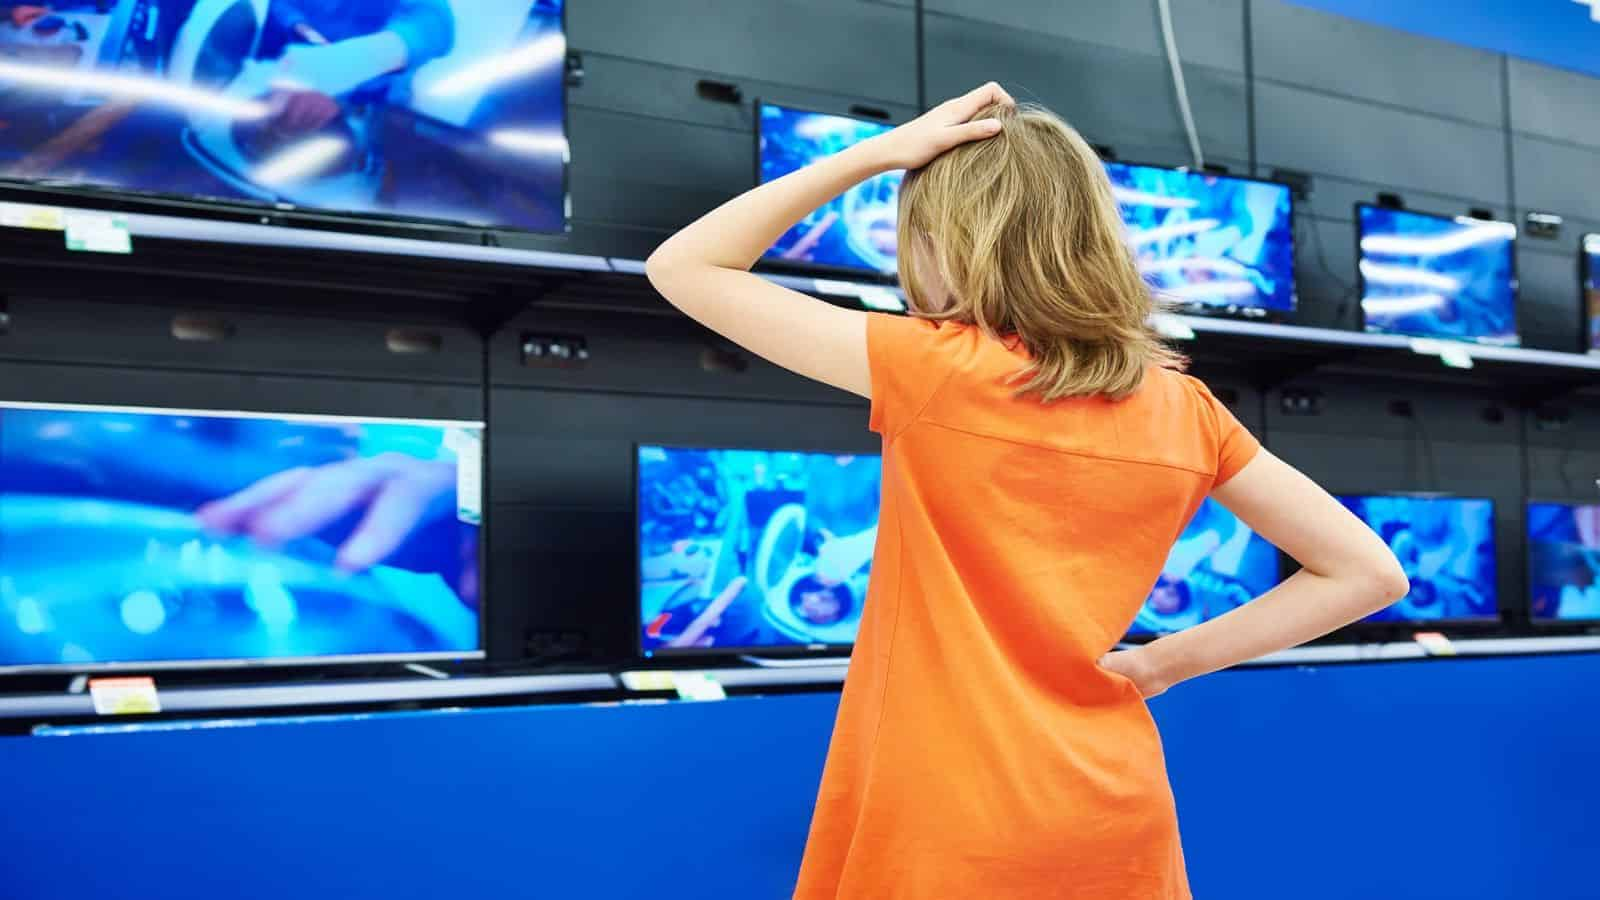 teenage girl looks at televisions TVs